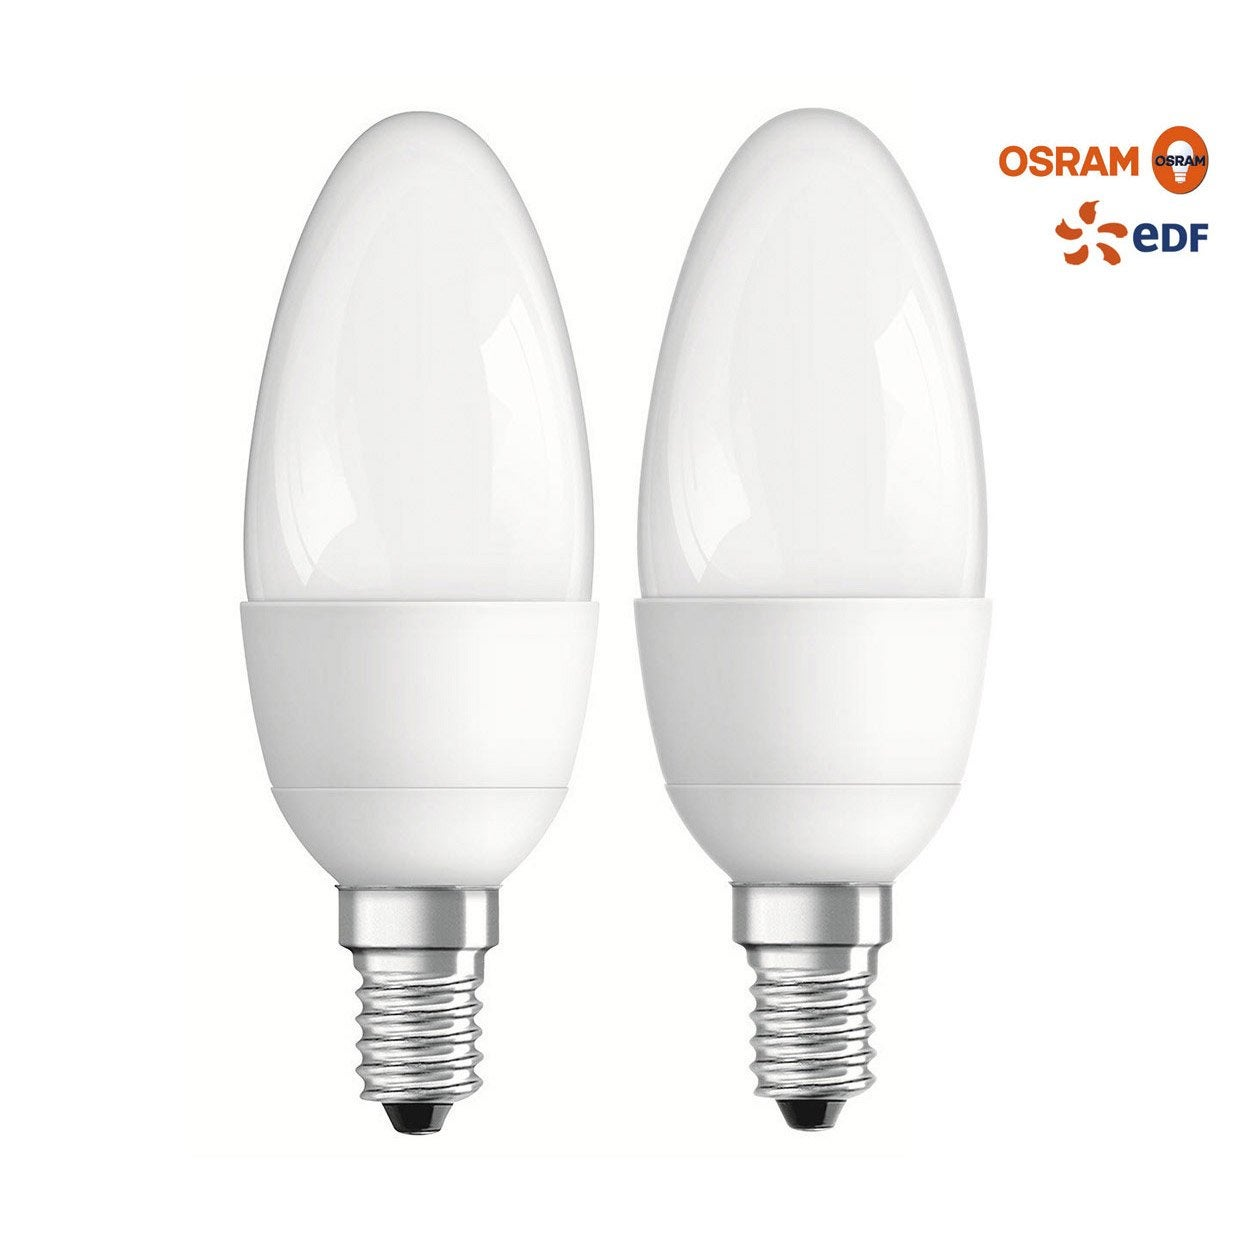 ampoule flamme led 40w osram e14 lumi re chaude env 2700k leroy merlin. Black Bedroom Furniture Sets. Home Design Ideas